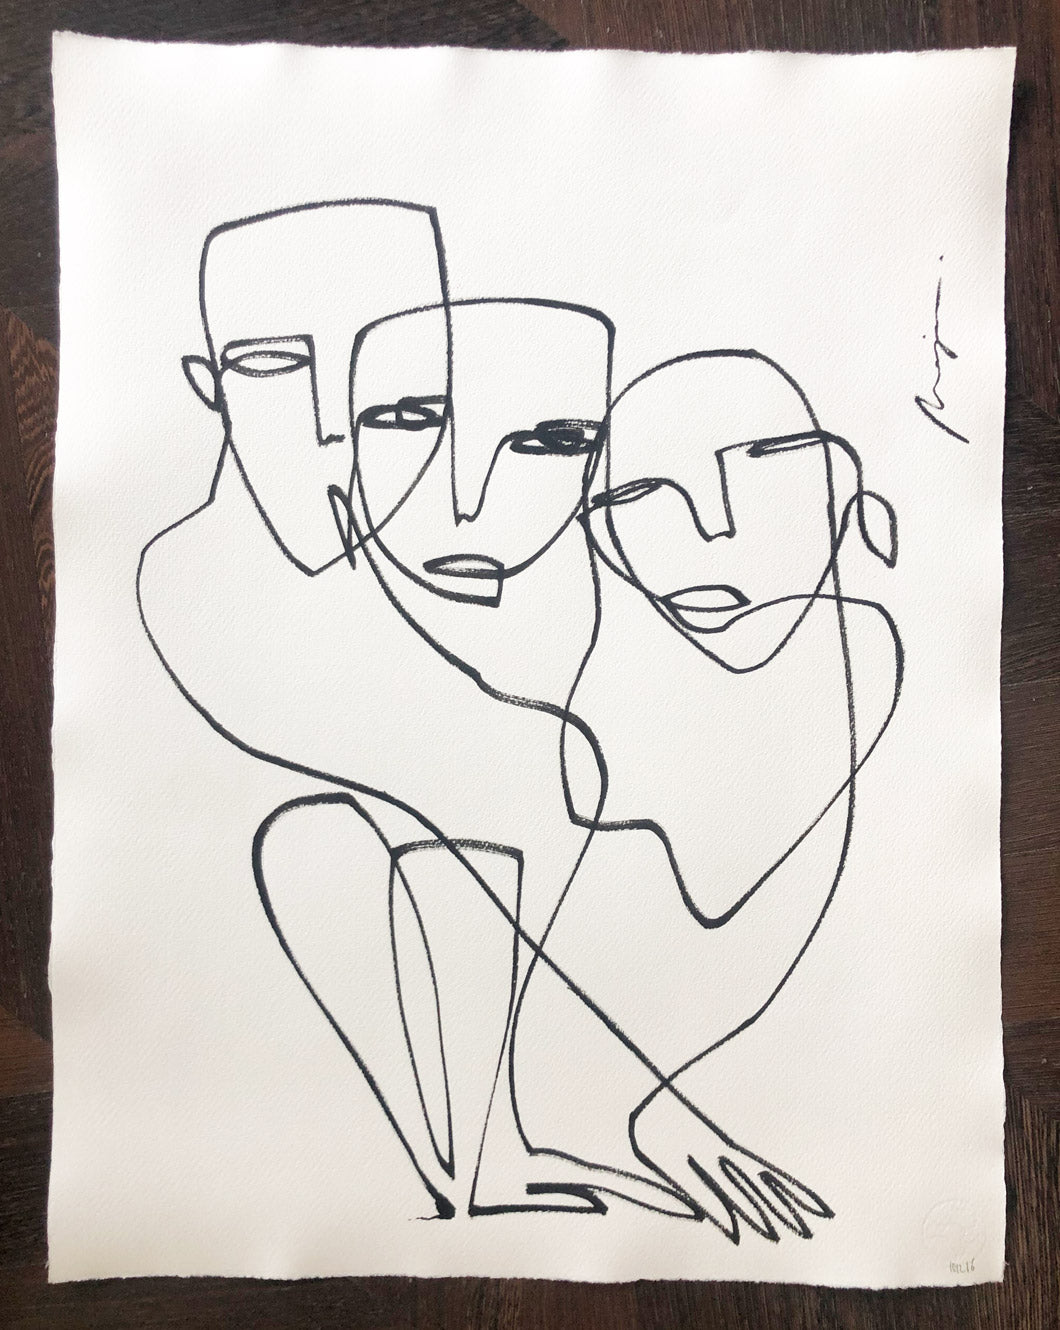 The Inseparable 3 I One line I unframed